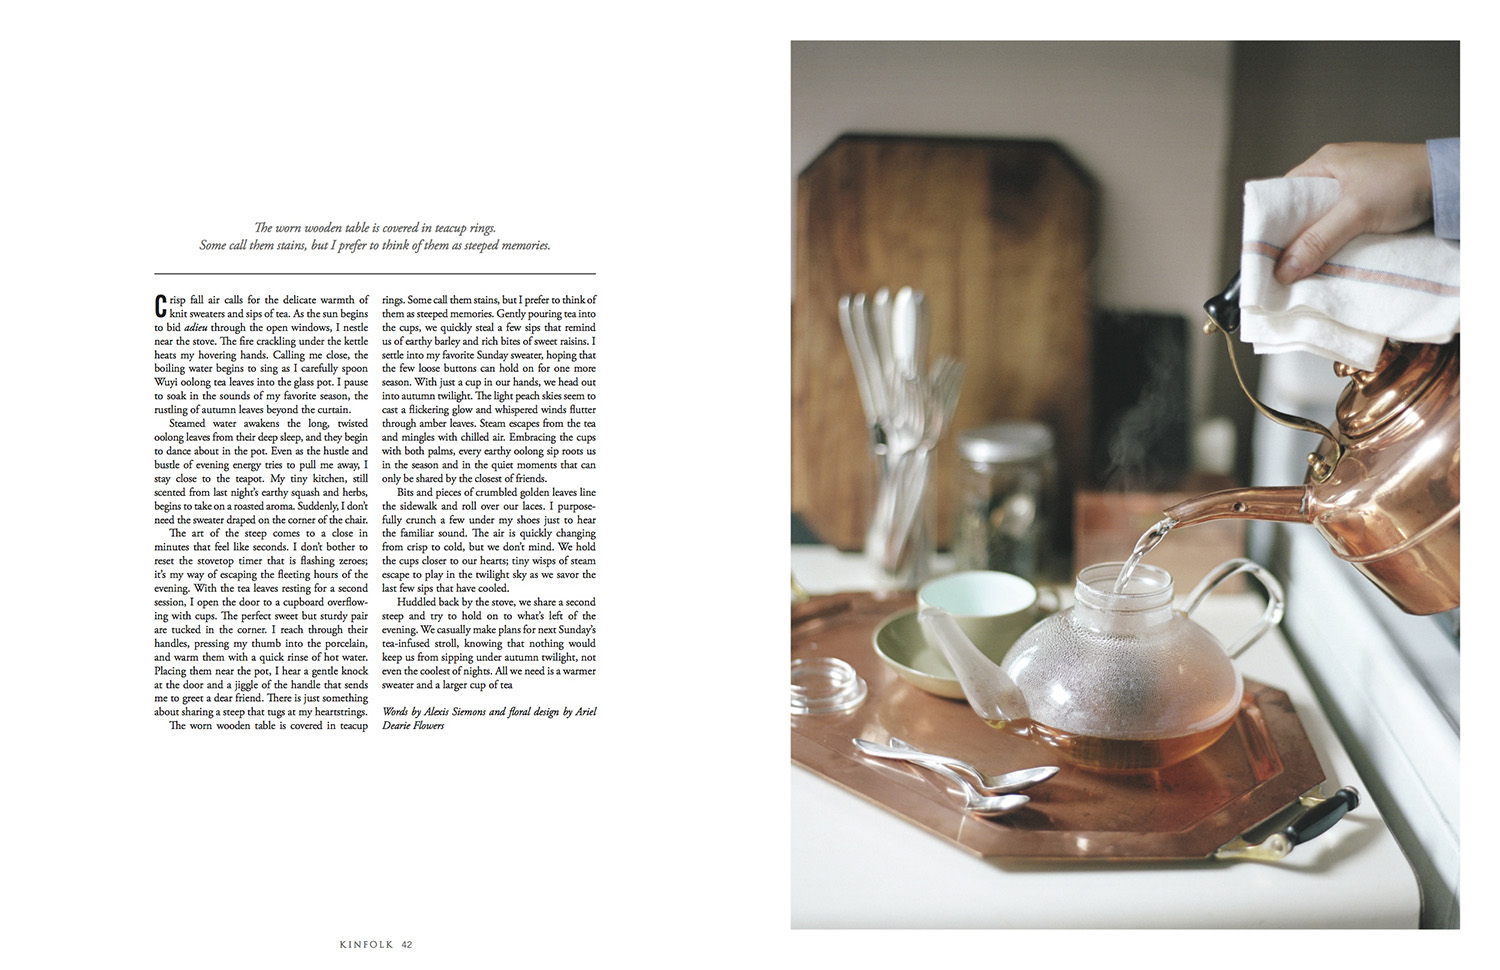 inside of kinfolk magazine picture of tea